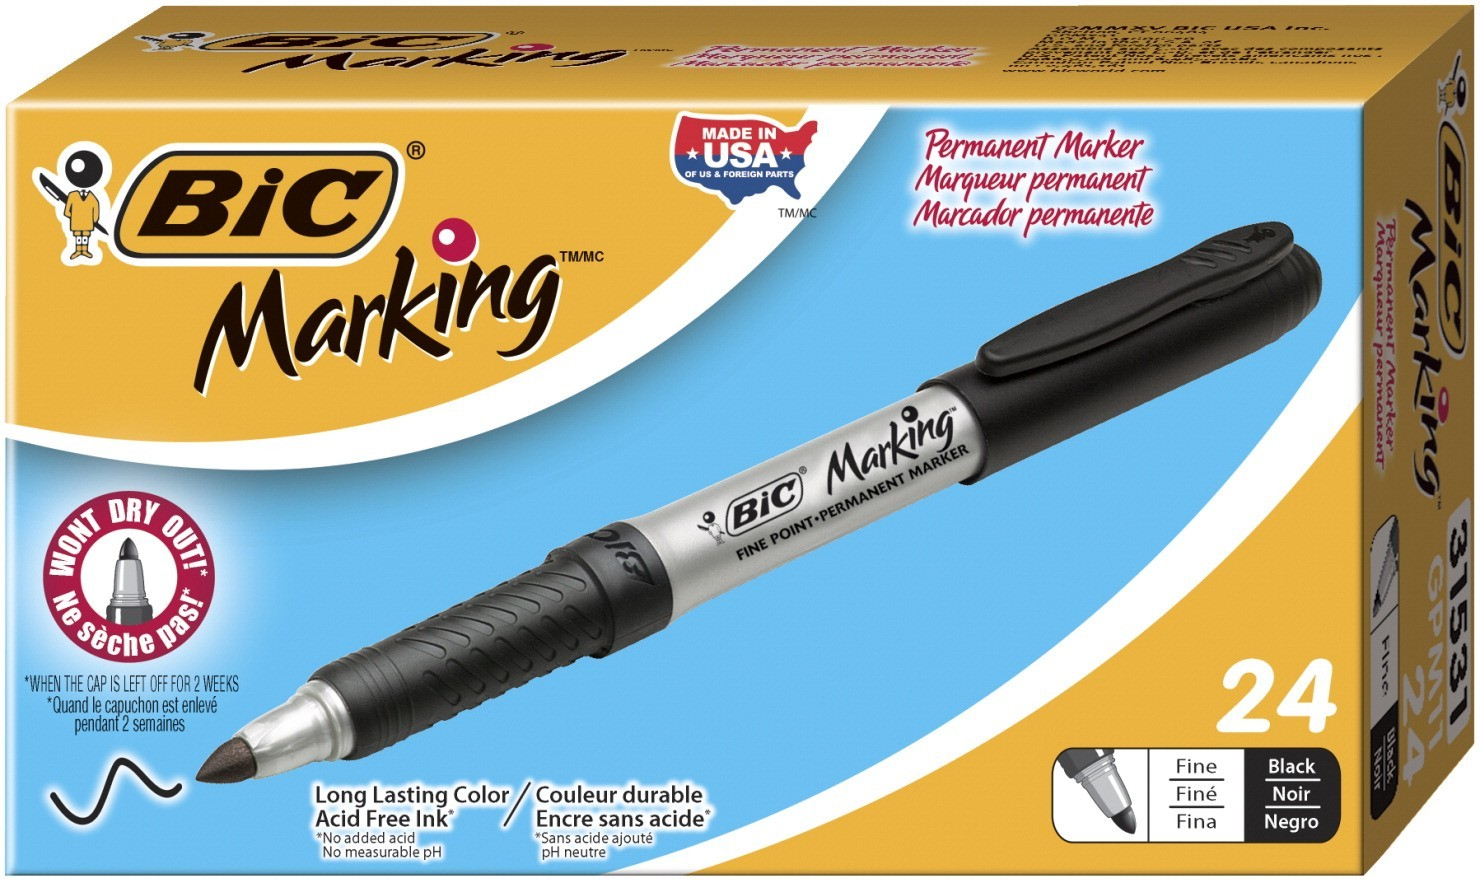 BIC Marking Acid-Free Non-Toxic Permanent Marker, Fine Tip, Black, Pack of 24